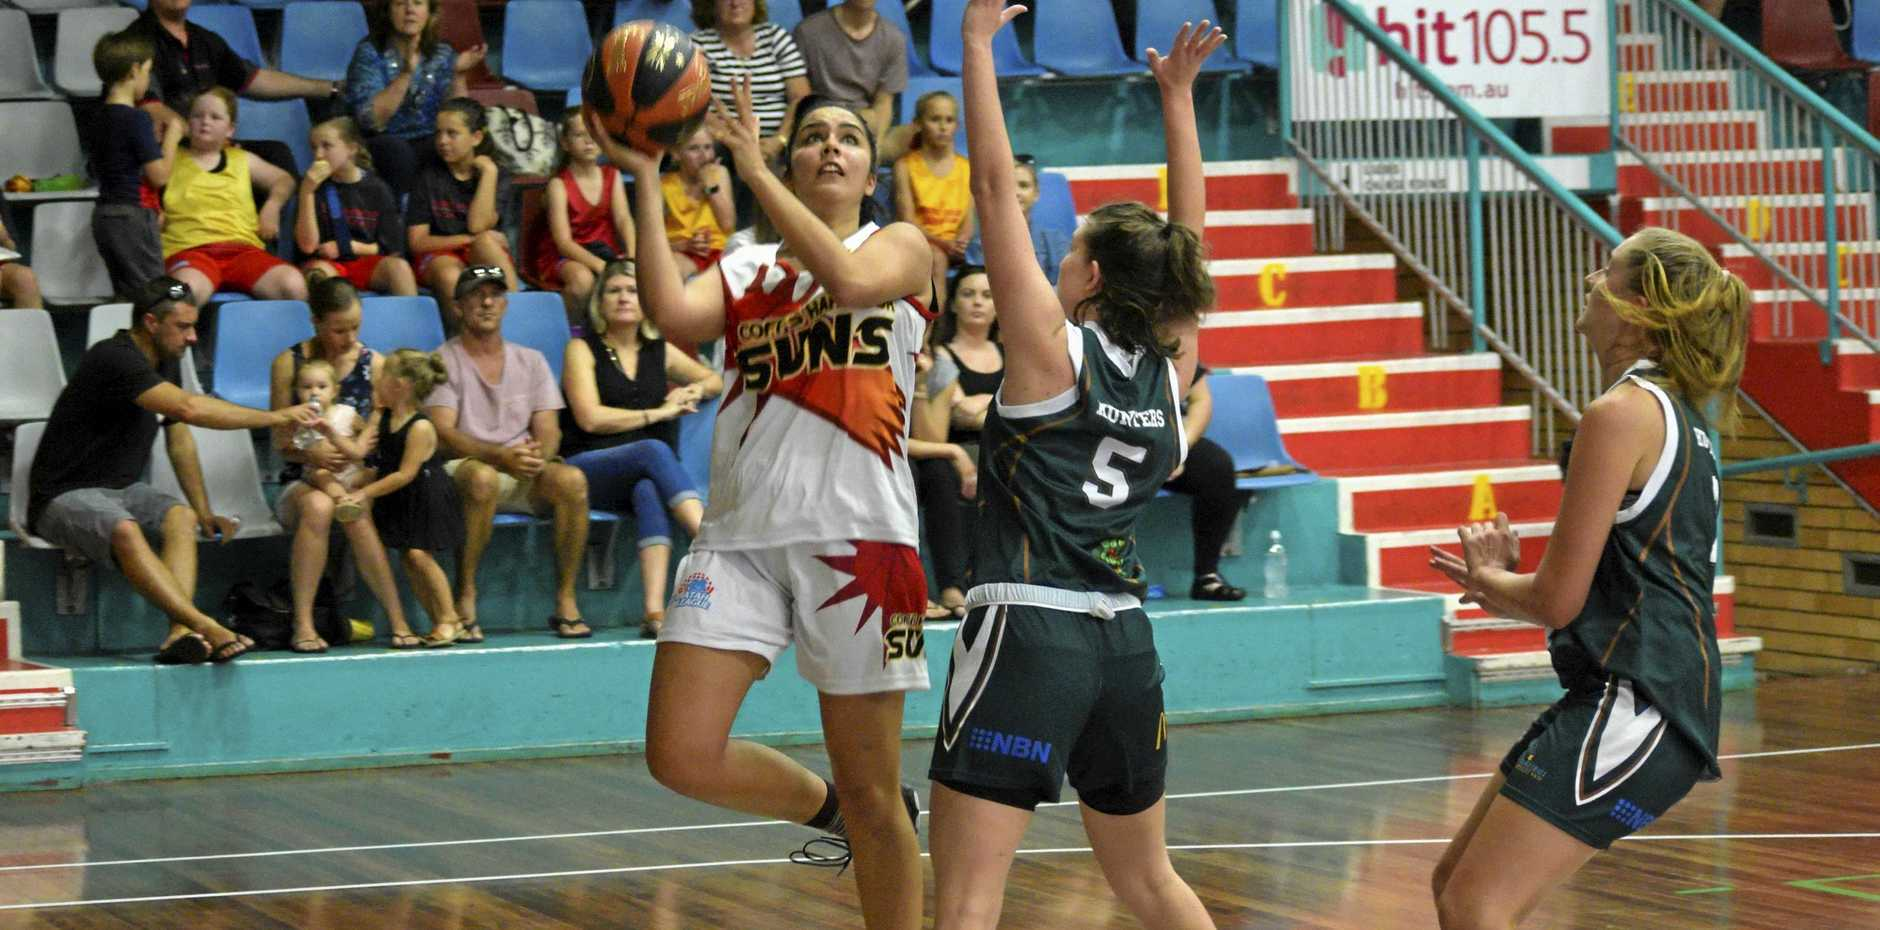 Laura Bamford shoots for the Coffs Harbour Suns in their Waratah League match against the Newcastle Hunters.